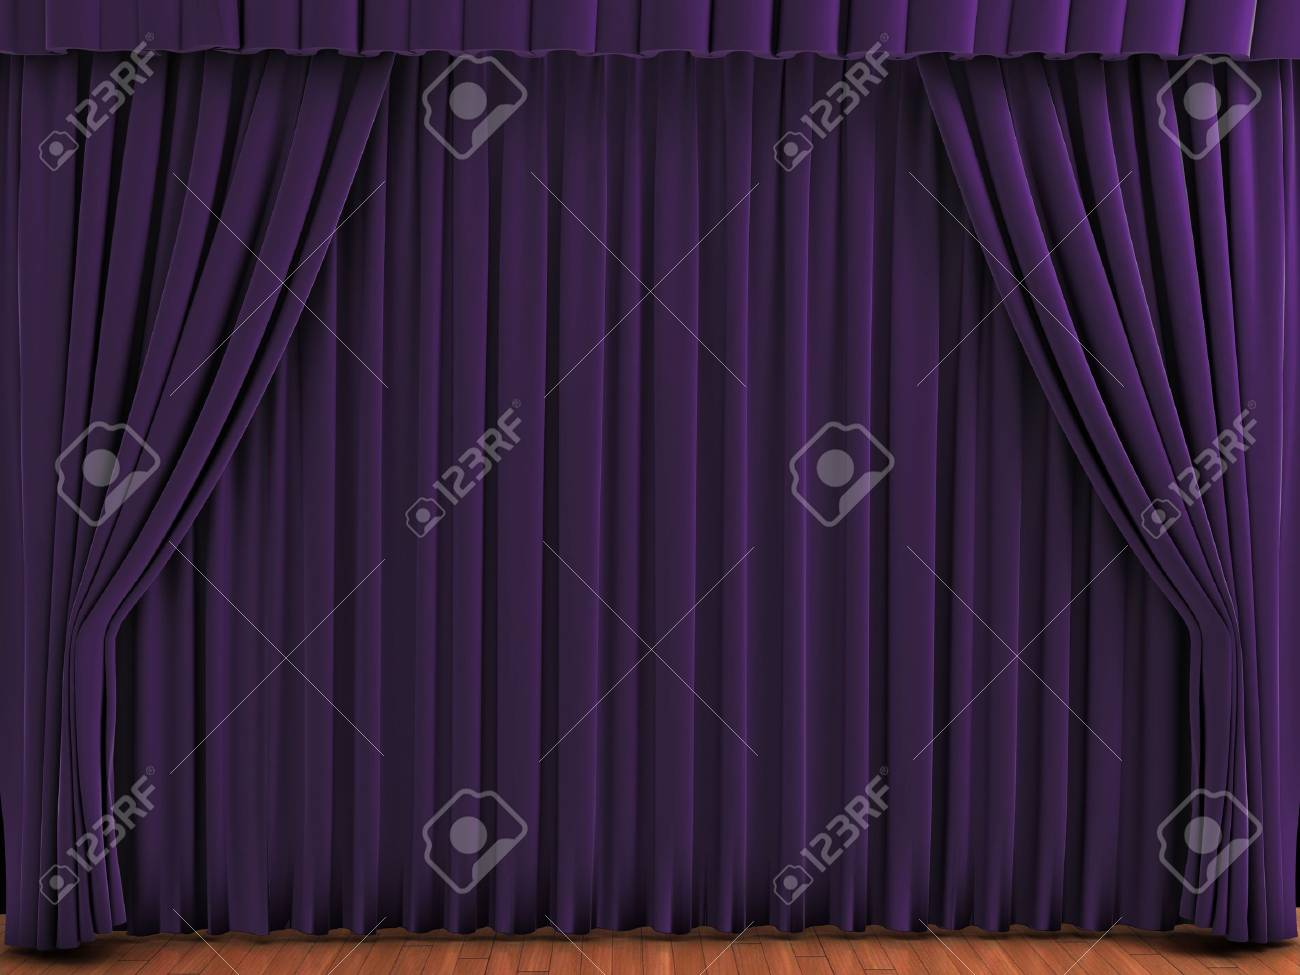 Purple theater curtains. Realistic illustration of velvet curtains. See my portfolio for alternative colors. Stock Photo - 5578499